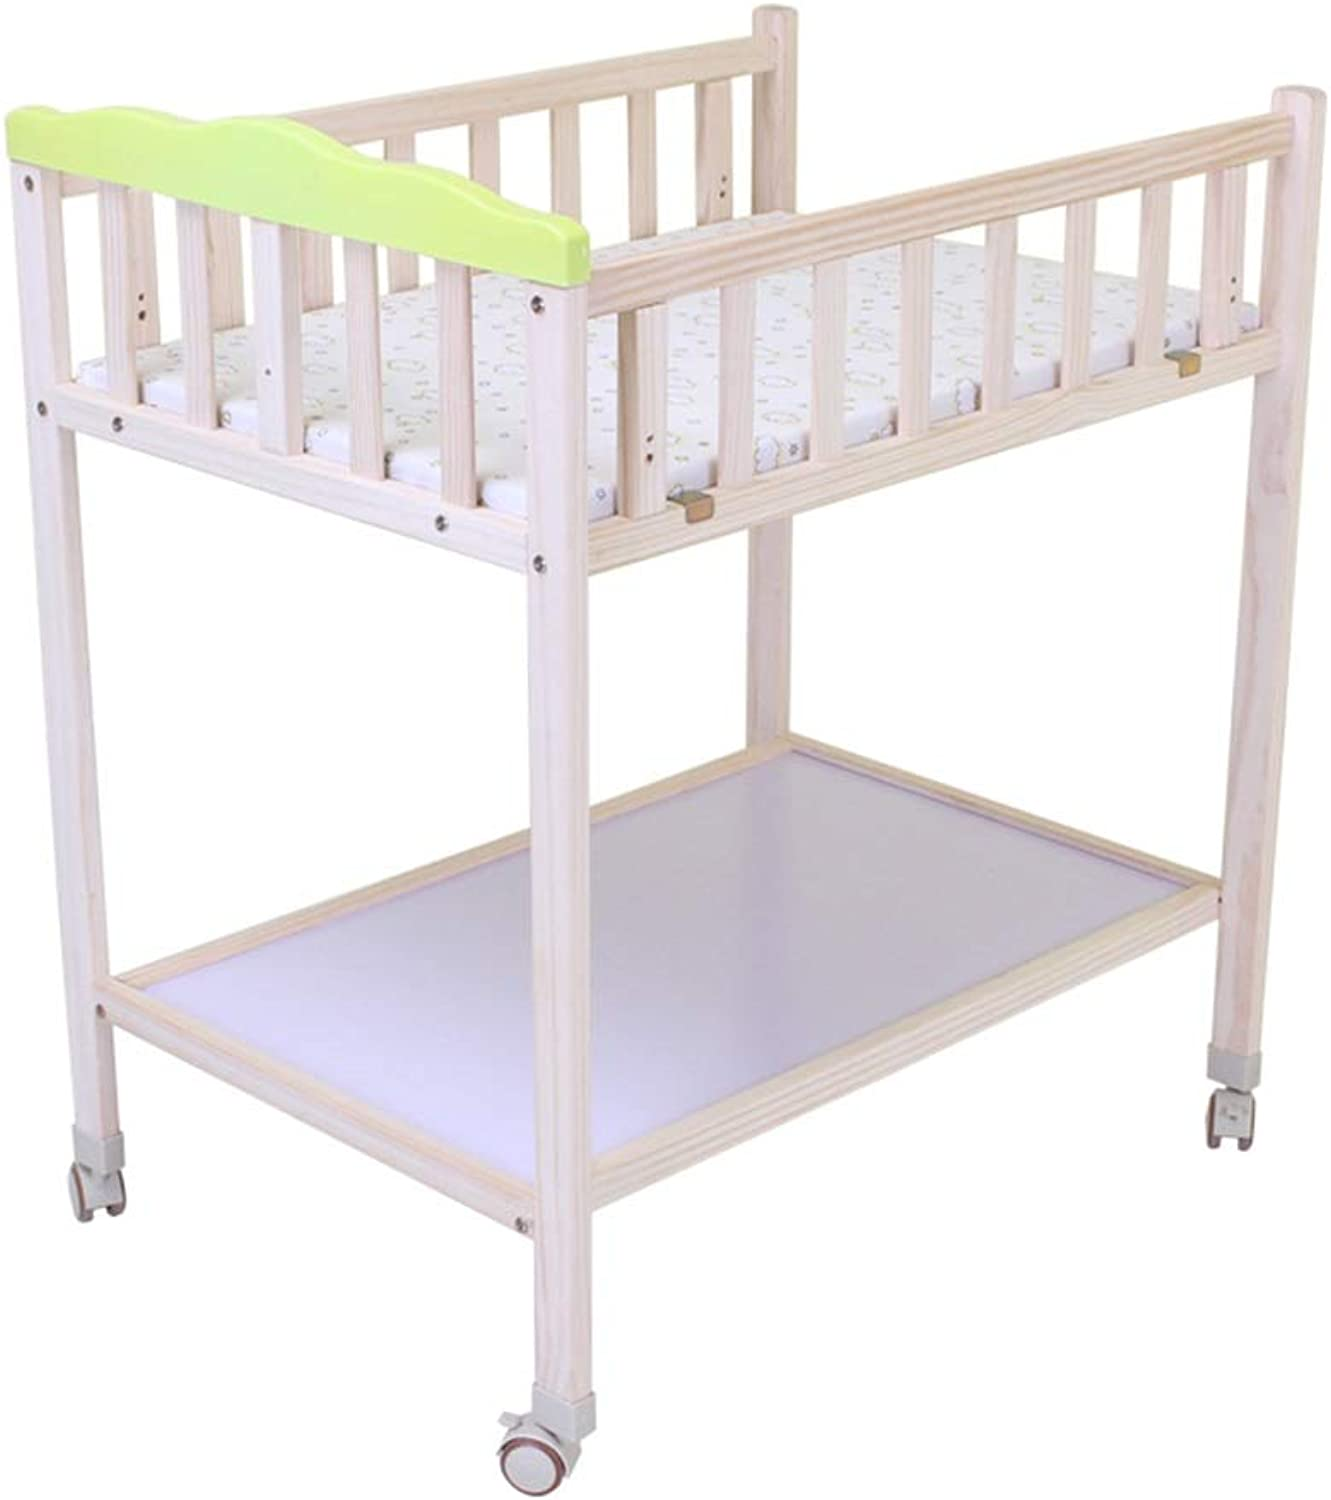 HANSHAN Changing Table Changing Table,Wood Nursing Desk Massage Table Crib Bathing Table Shelf Multi-Functional Storage 0-18 Month 32 × 24 × 37 Inch